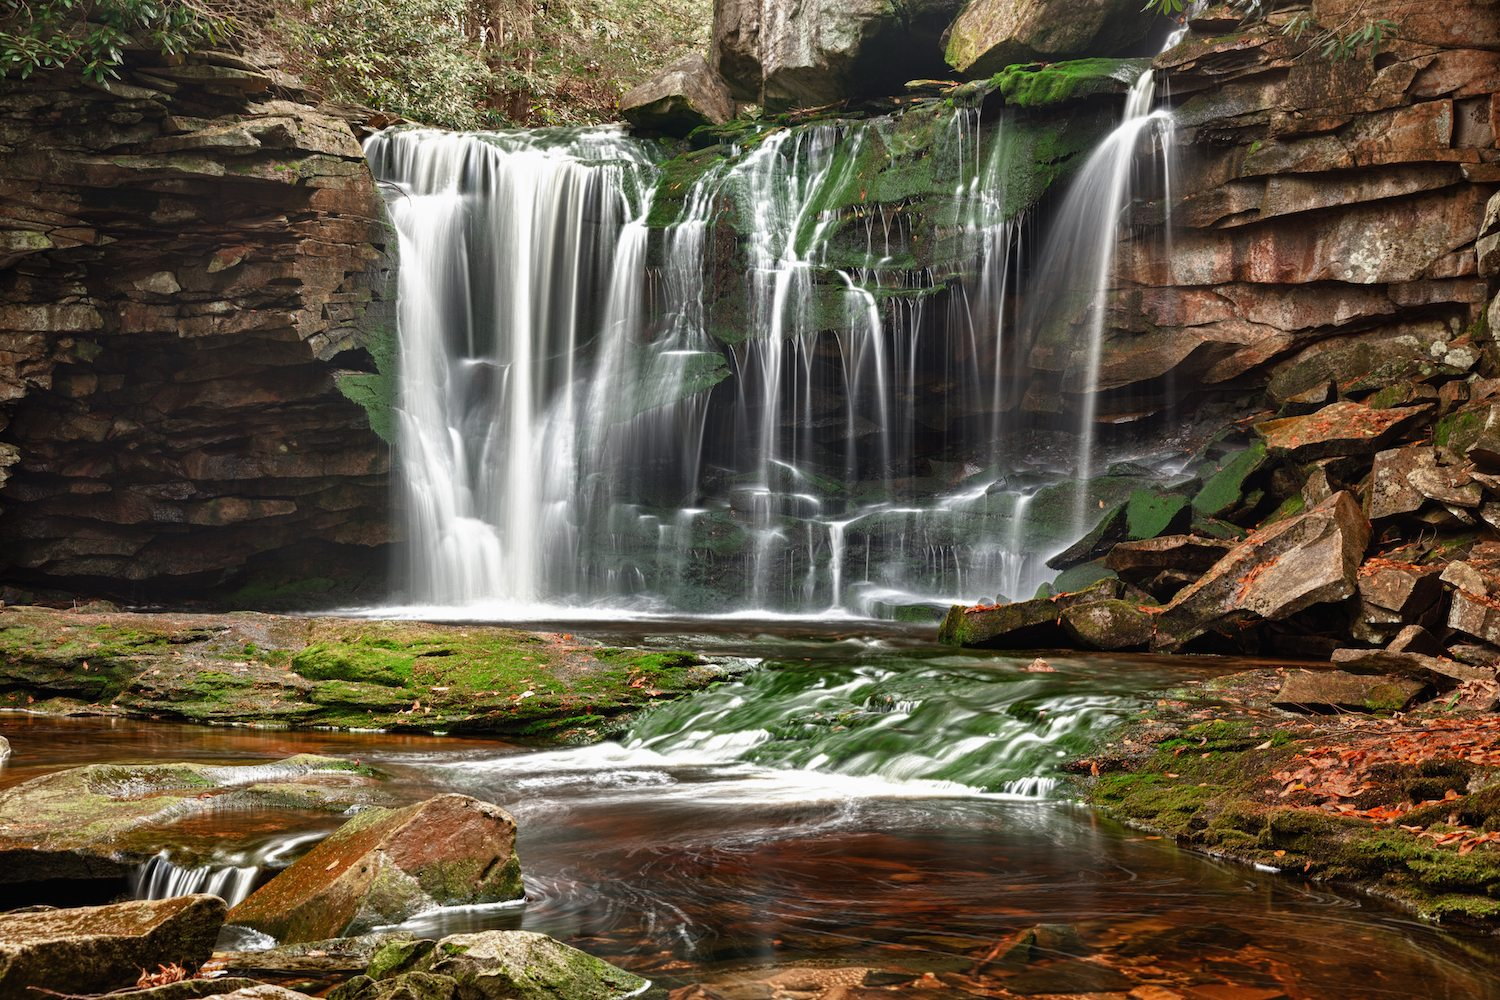 Scenic Highways West Virginia S Most Breathtaking Waterfalls Drive The